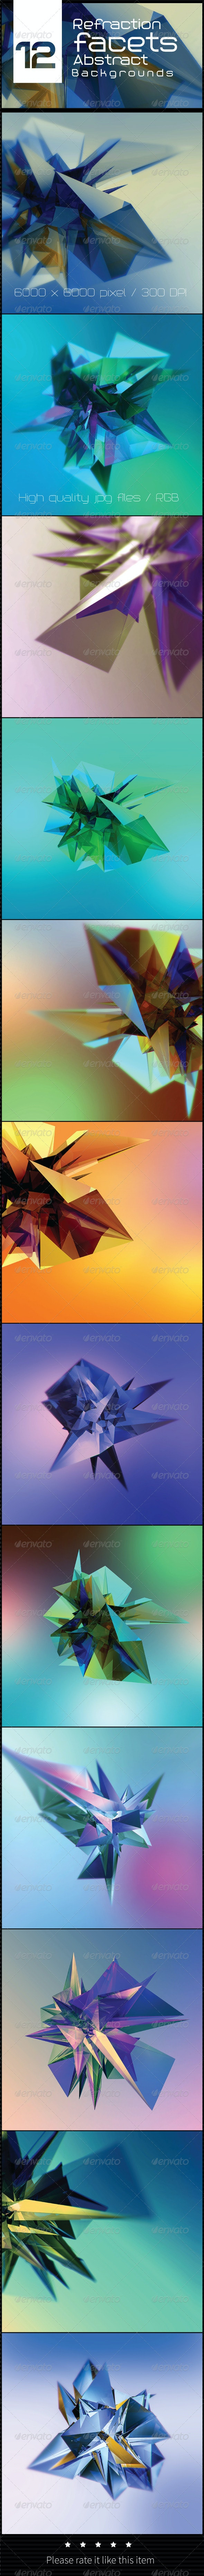 12 Refraction Facets Abstract Backgrounds - Abstract Backgrounds